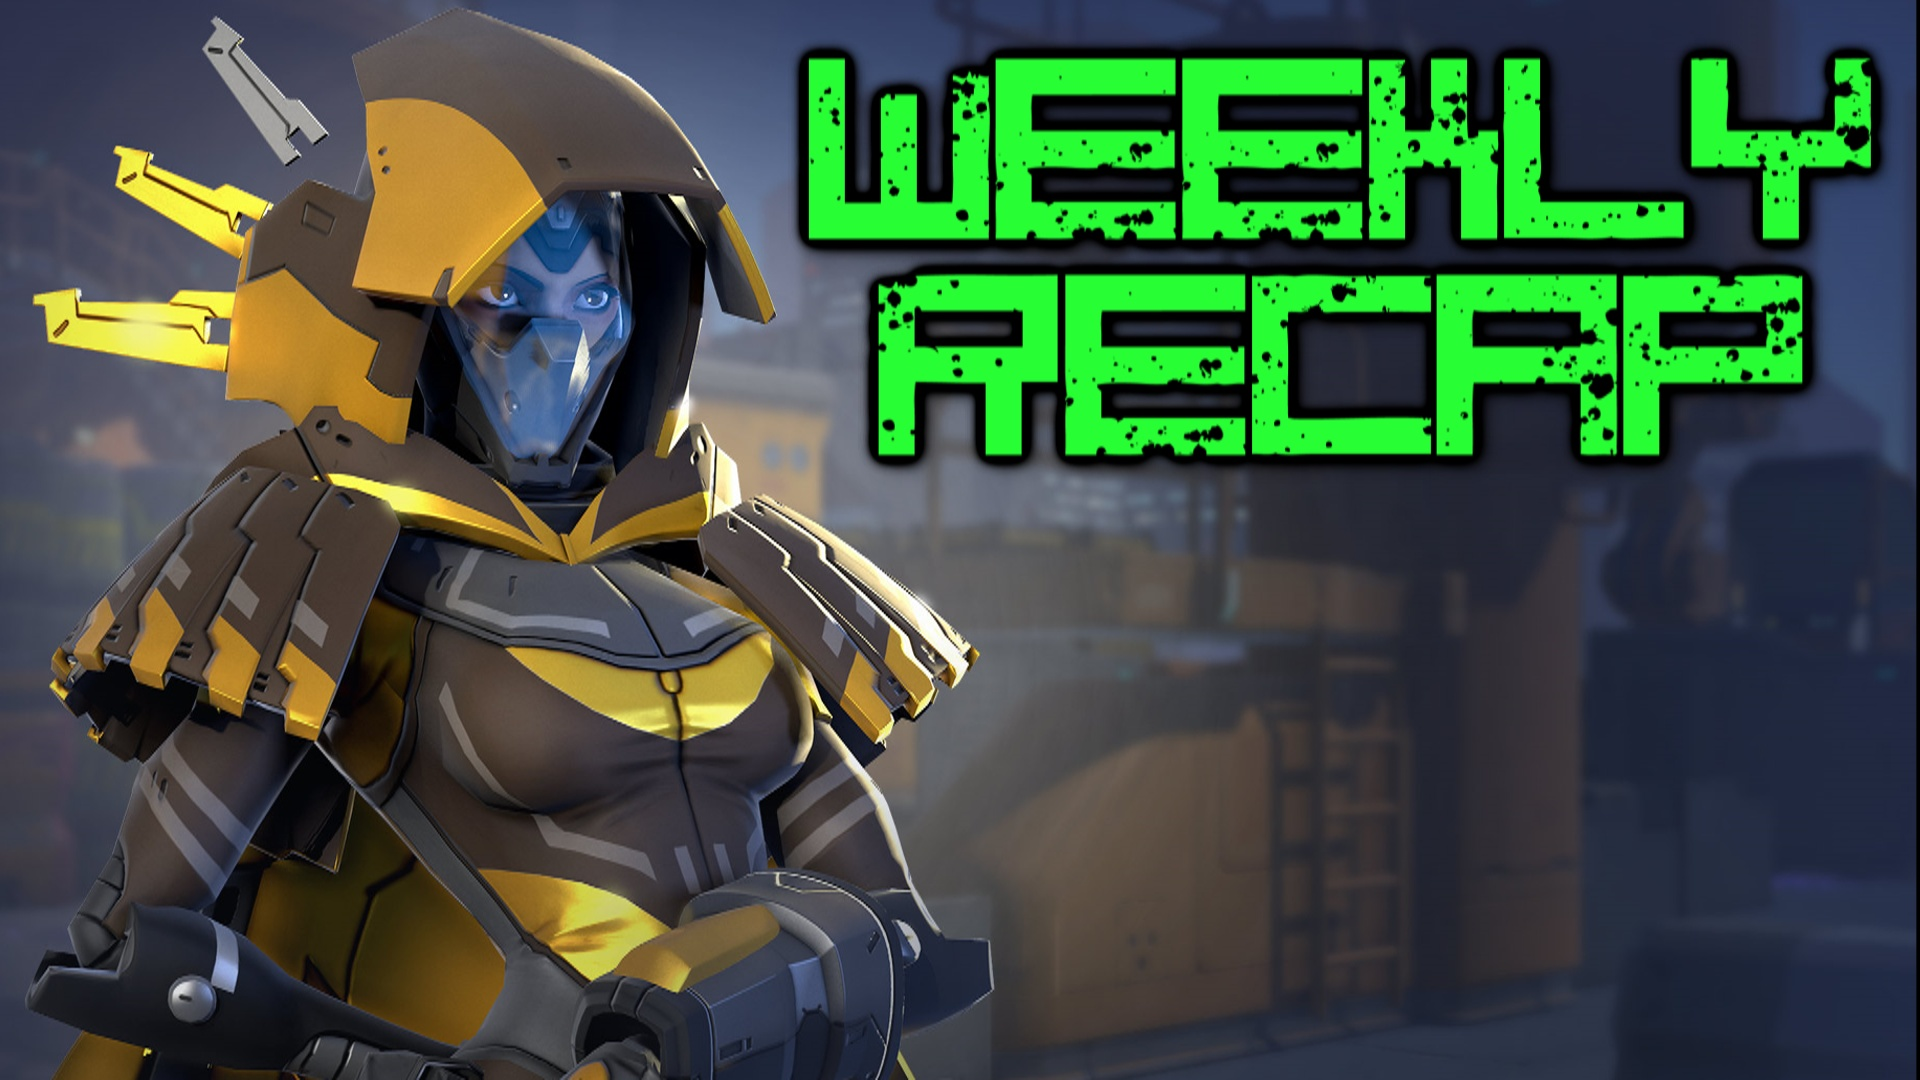 MMOHuts Weekly Recap #278 Feb. 22nd - Atlas Reactor, B&S, Metal Assault & More!